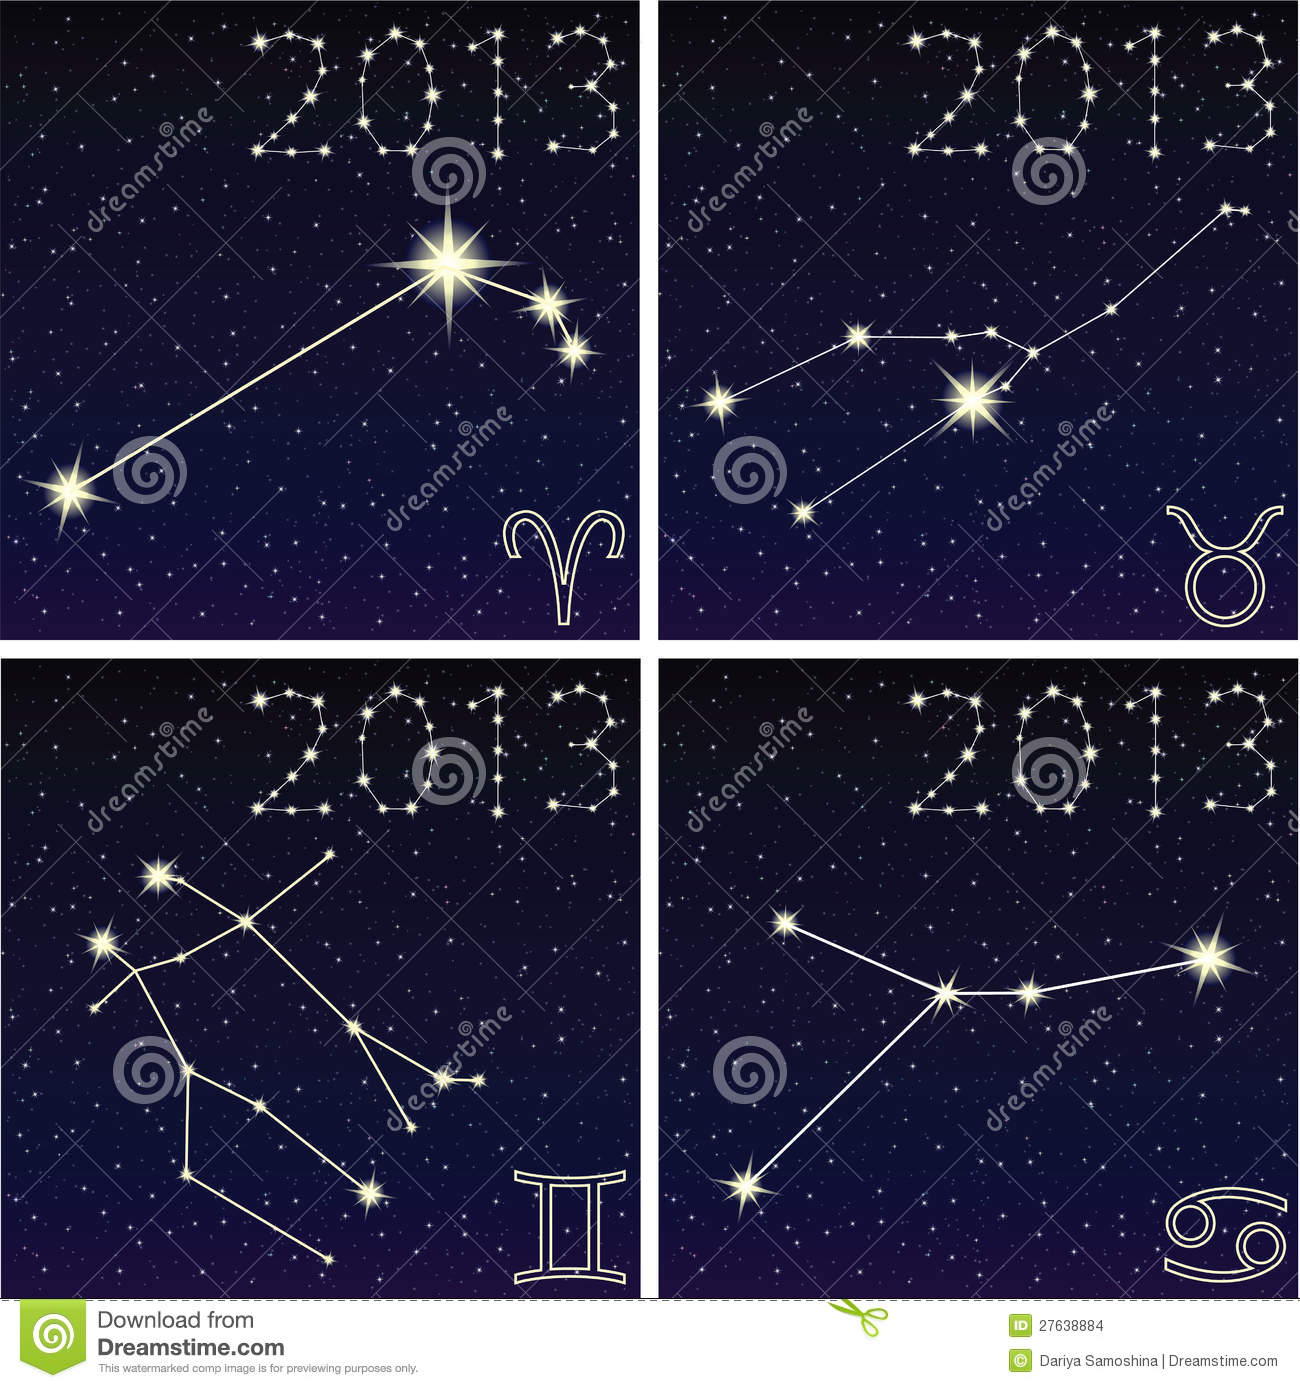 b lier de constellation taureau g meaux cancer images. Black Bedroom Furniture Sets. Home Design Ideas